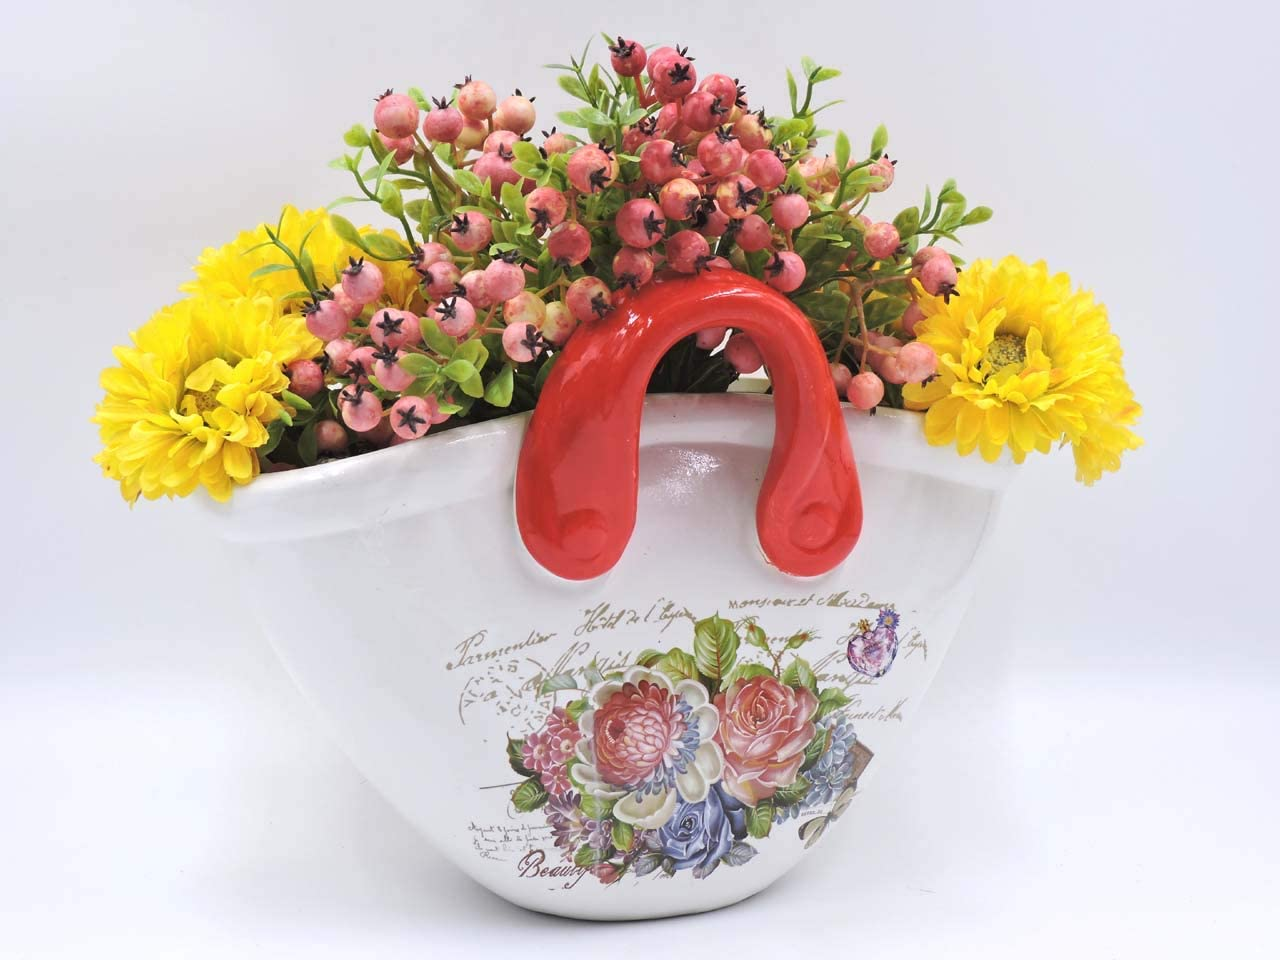 hadaaya gifts & home decor Basket Shaped Planter, Beautiful Floral Design with Red Color Handles Decorative, Shabby Chic, Ceramic Showpiece